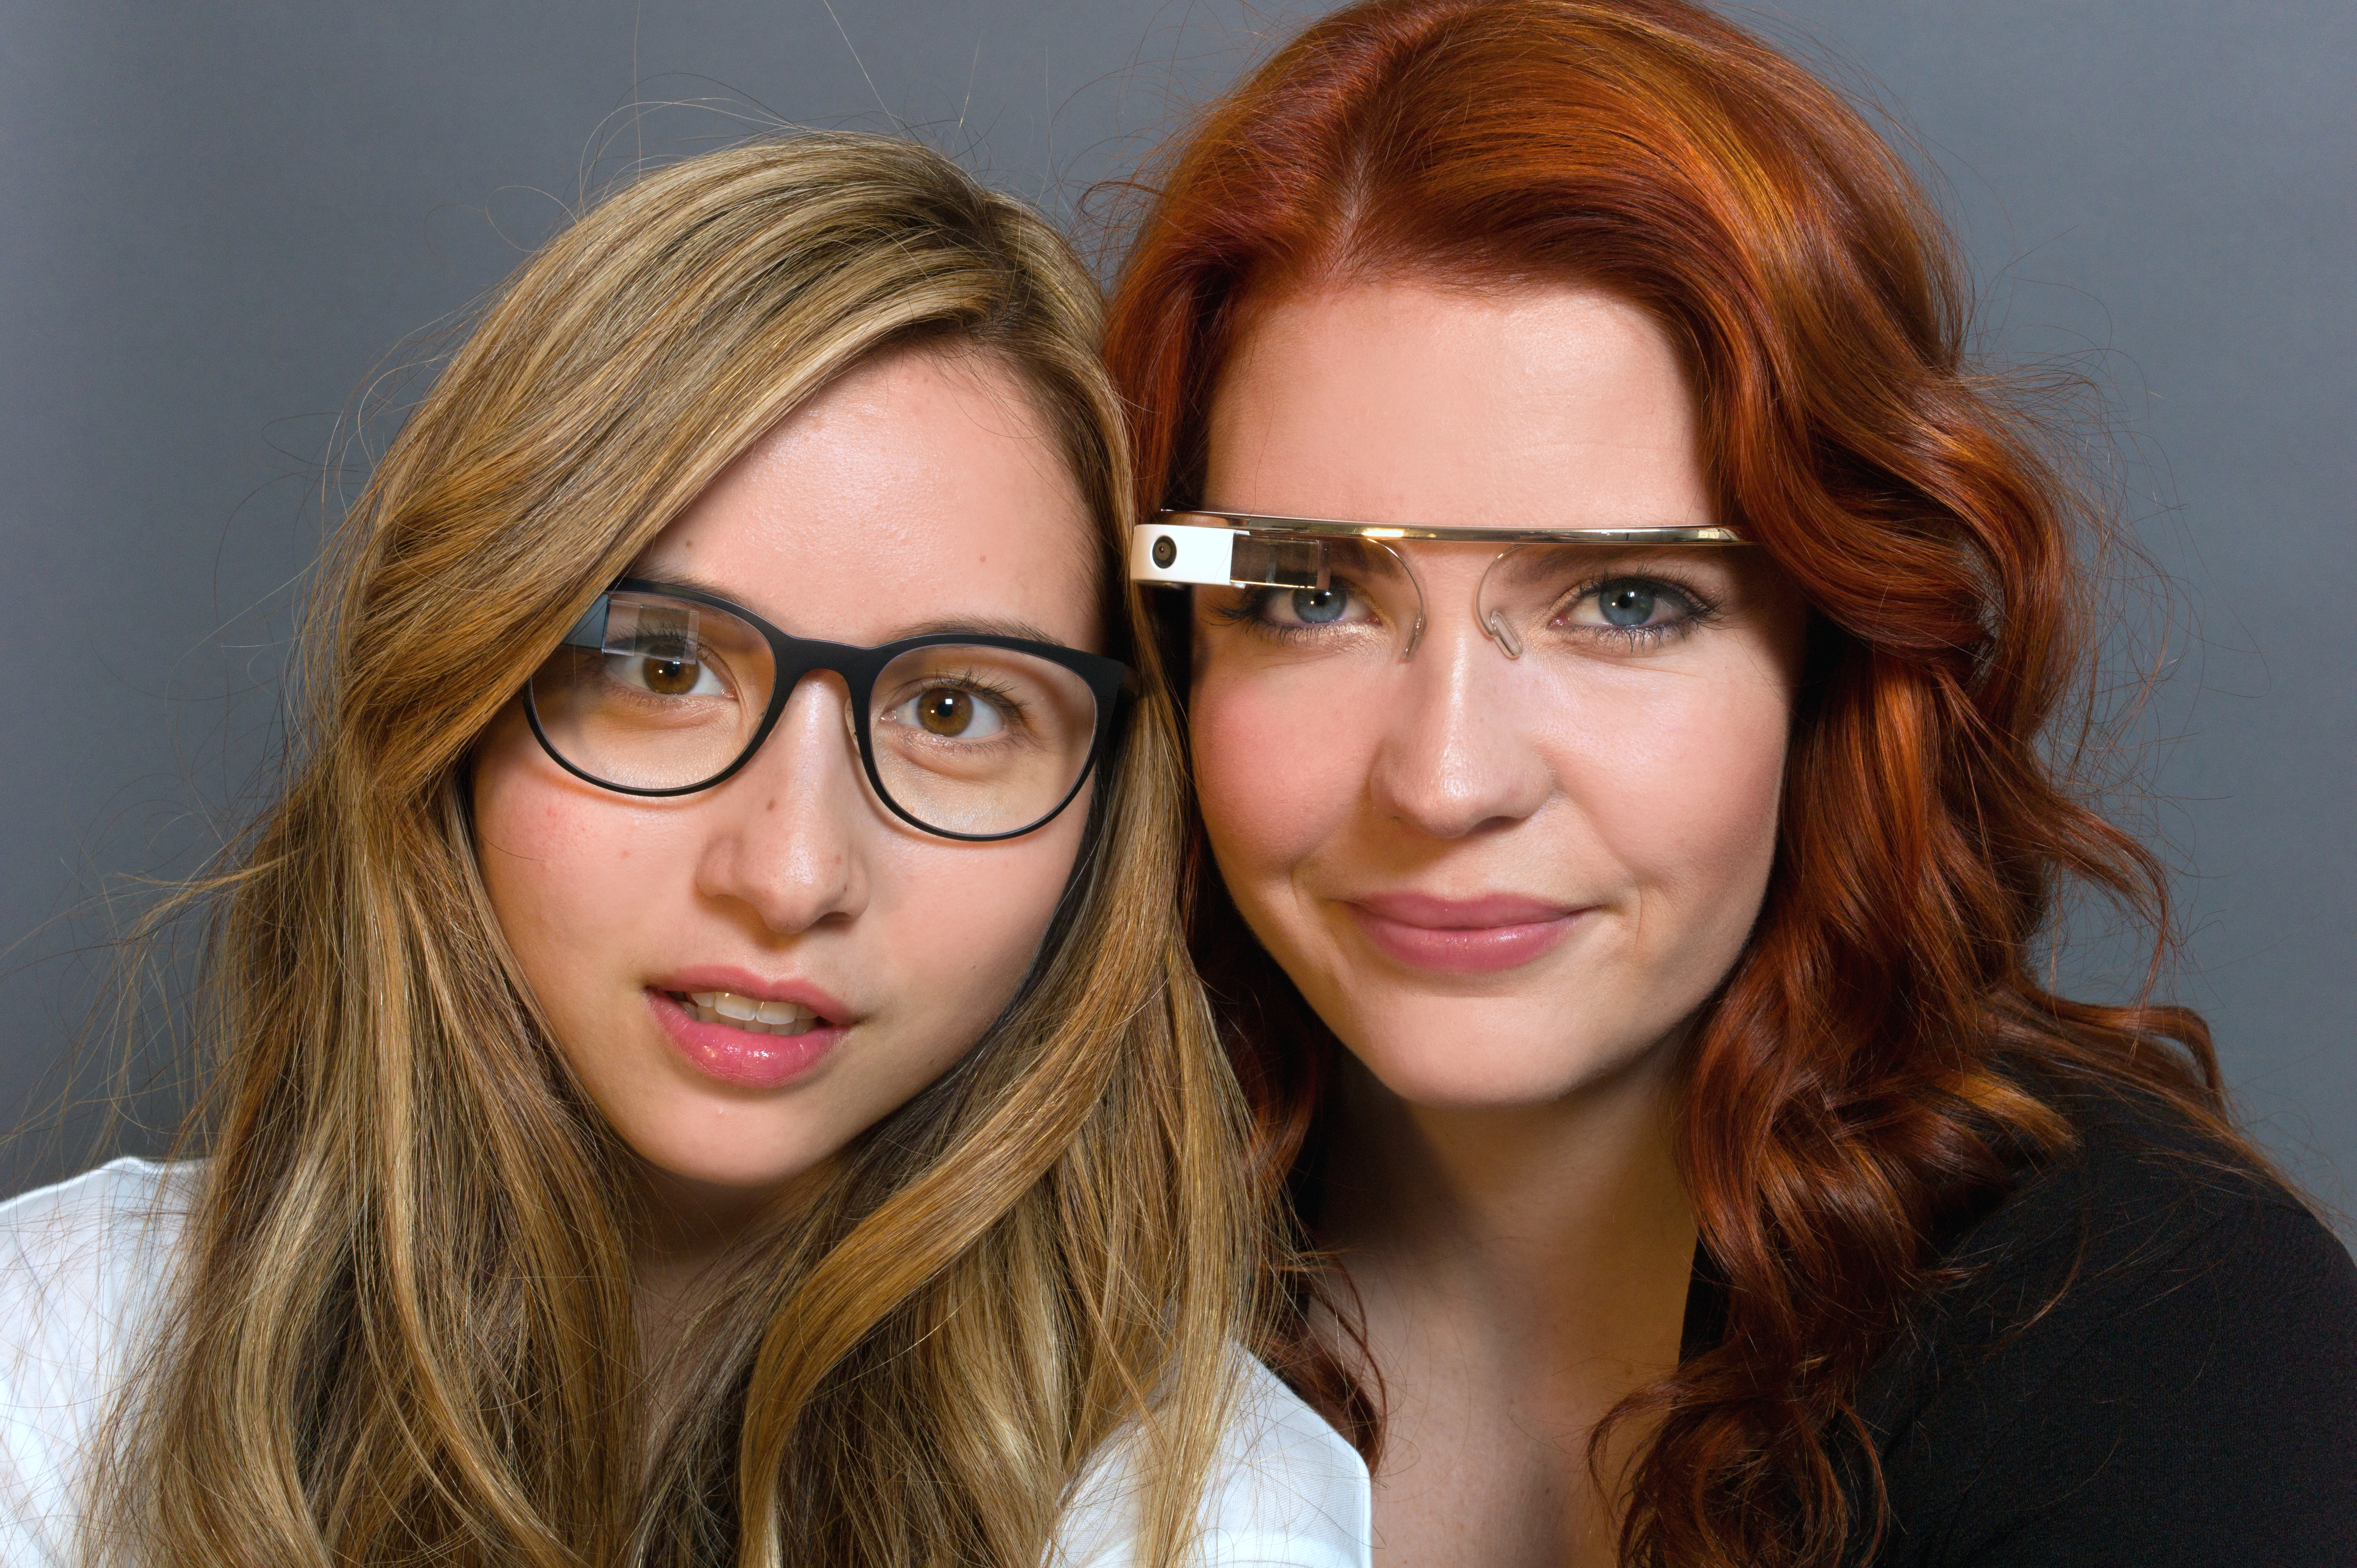 dc2b368d3f7 New Google Glass patent shows the hardware baked into a more ...